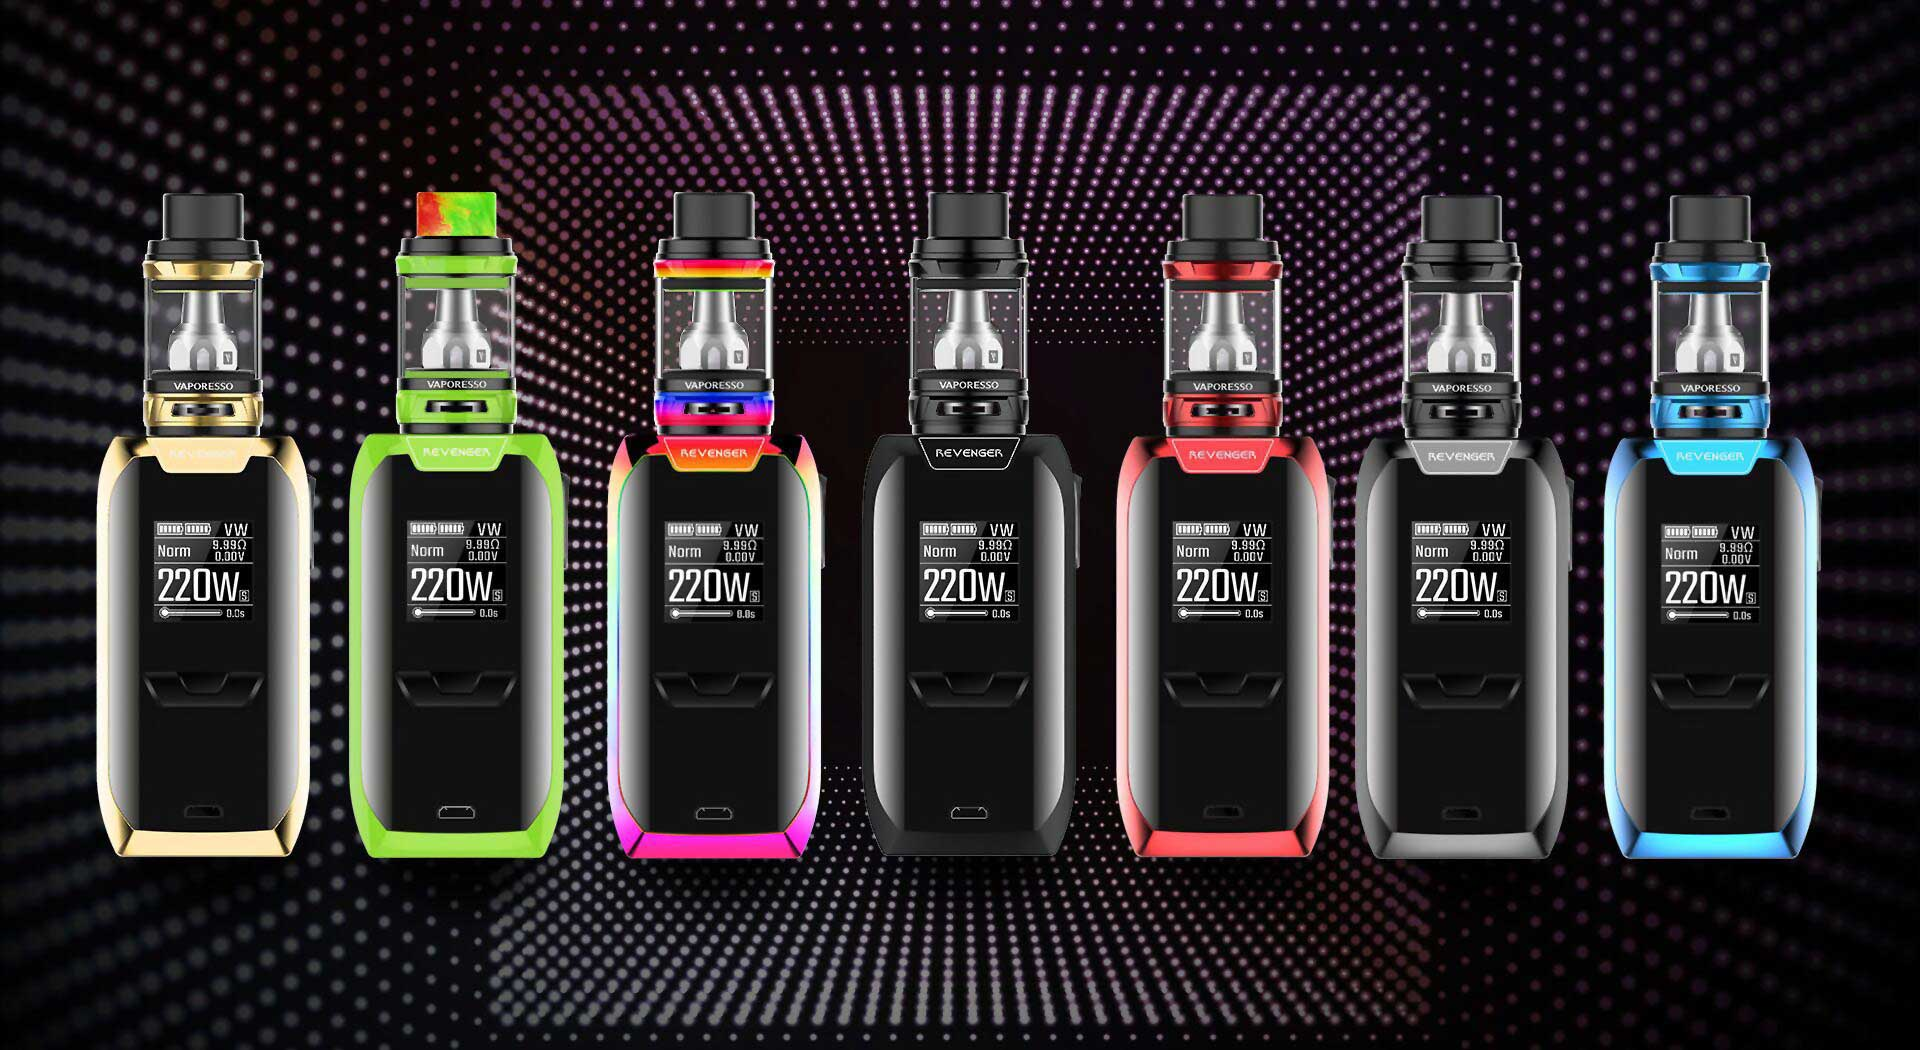 The Revenger by Vaporesso utilizes an advanced chipset OMNI Board 2.0 up to 220W vaping.